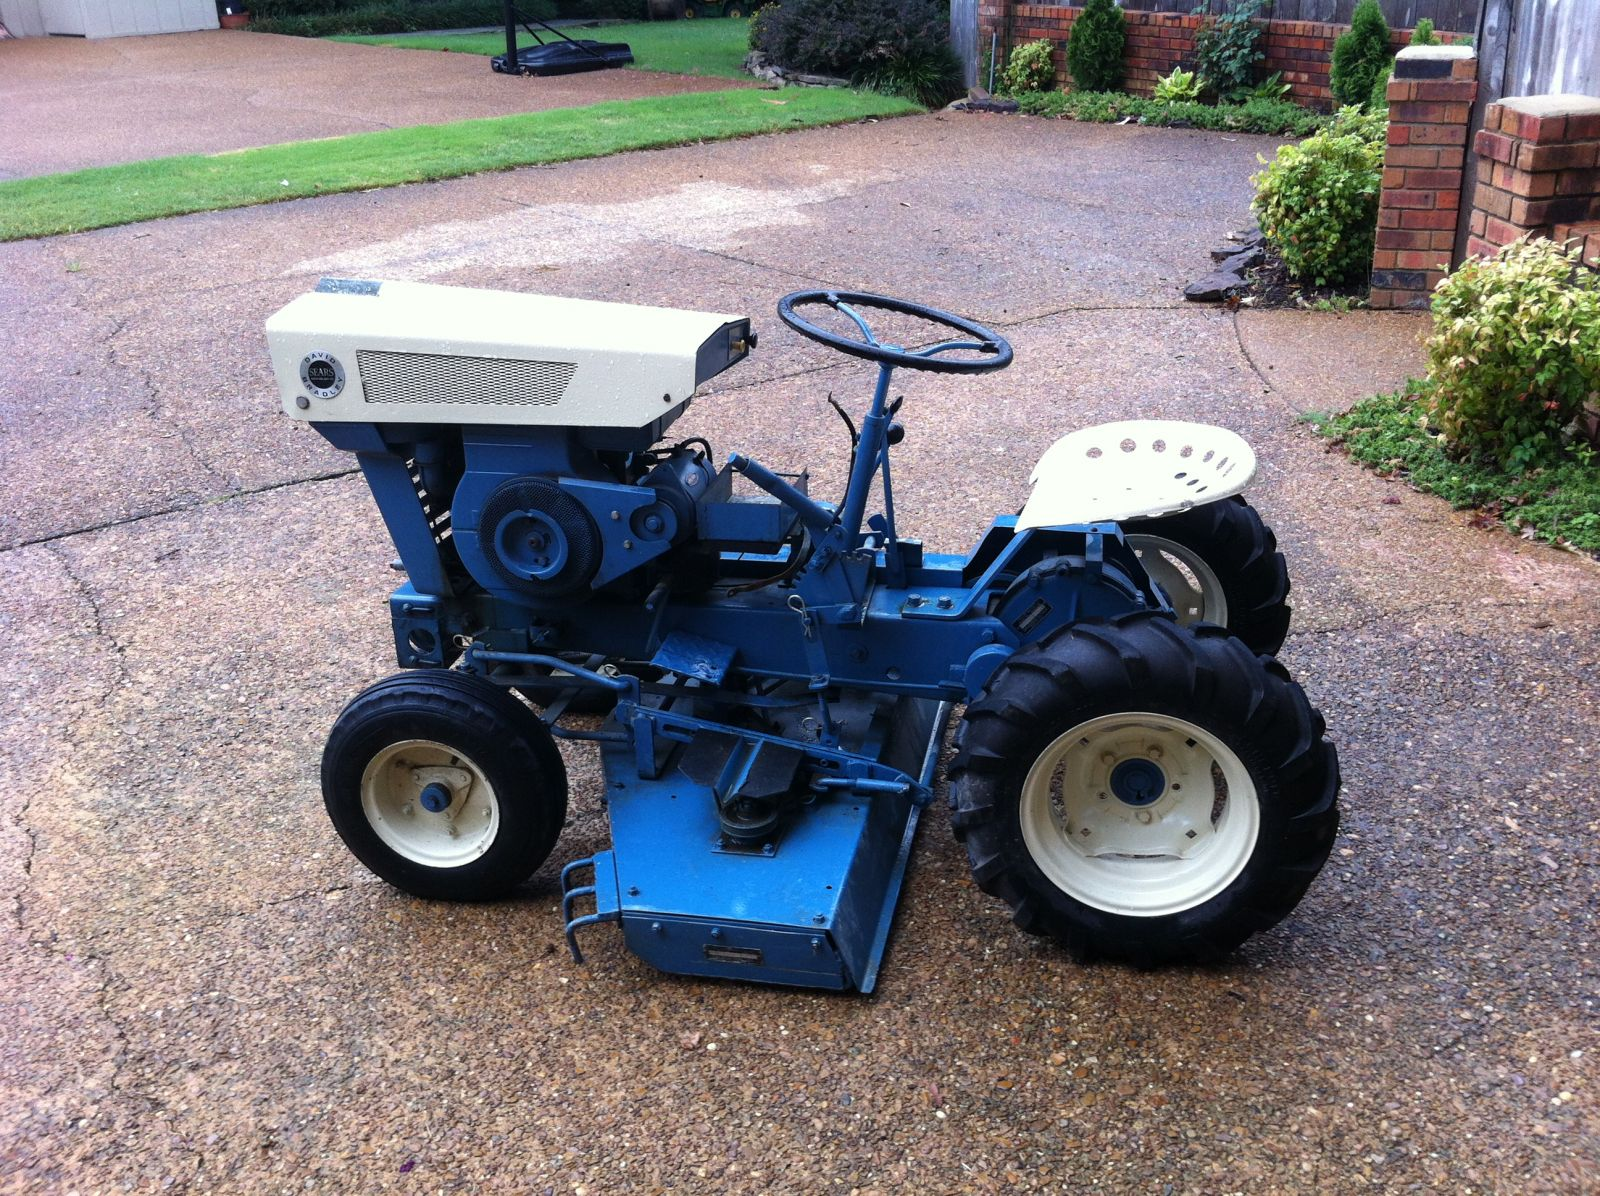 1972 Sears Suburban Garden Tractor Motorcycle Review And